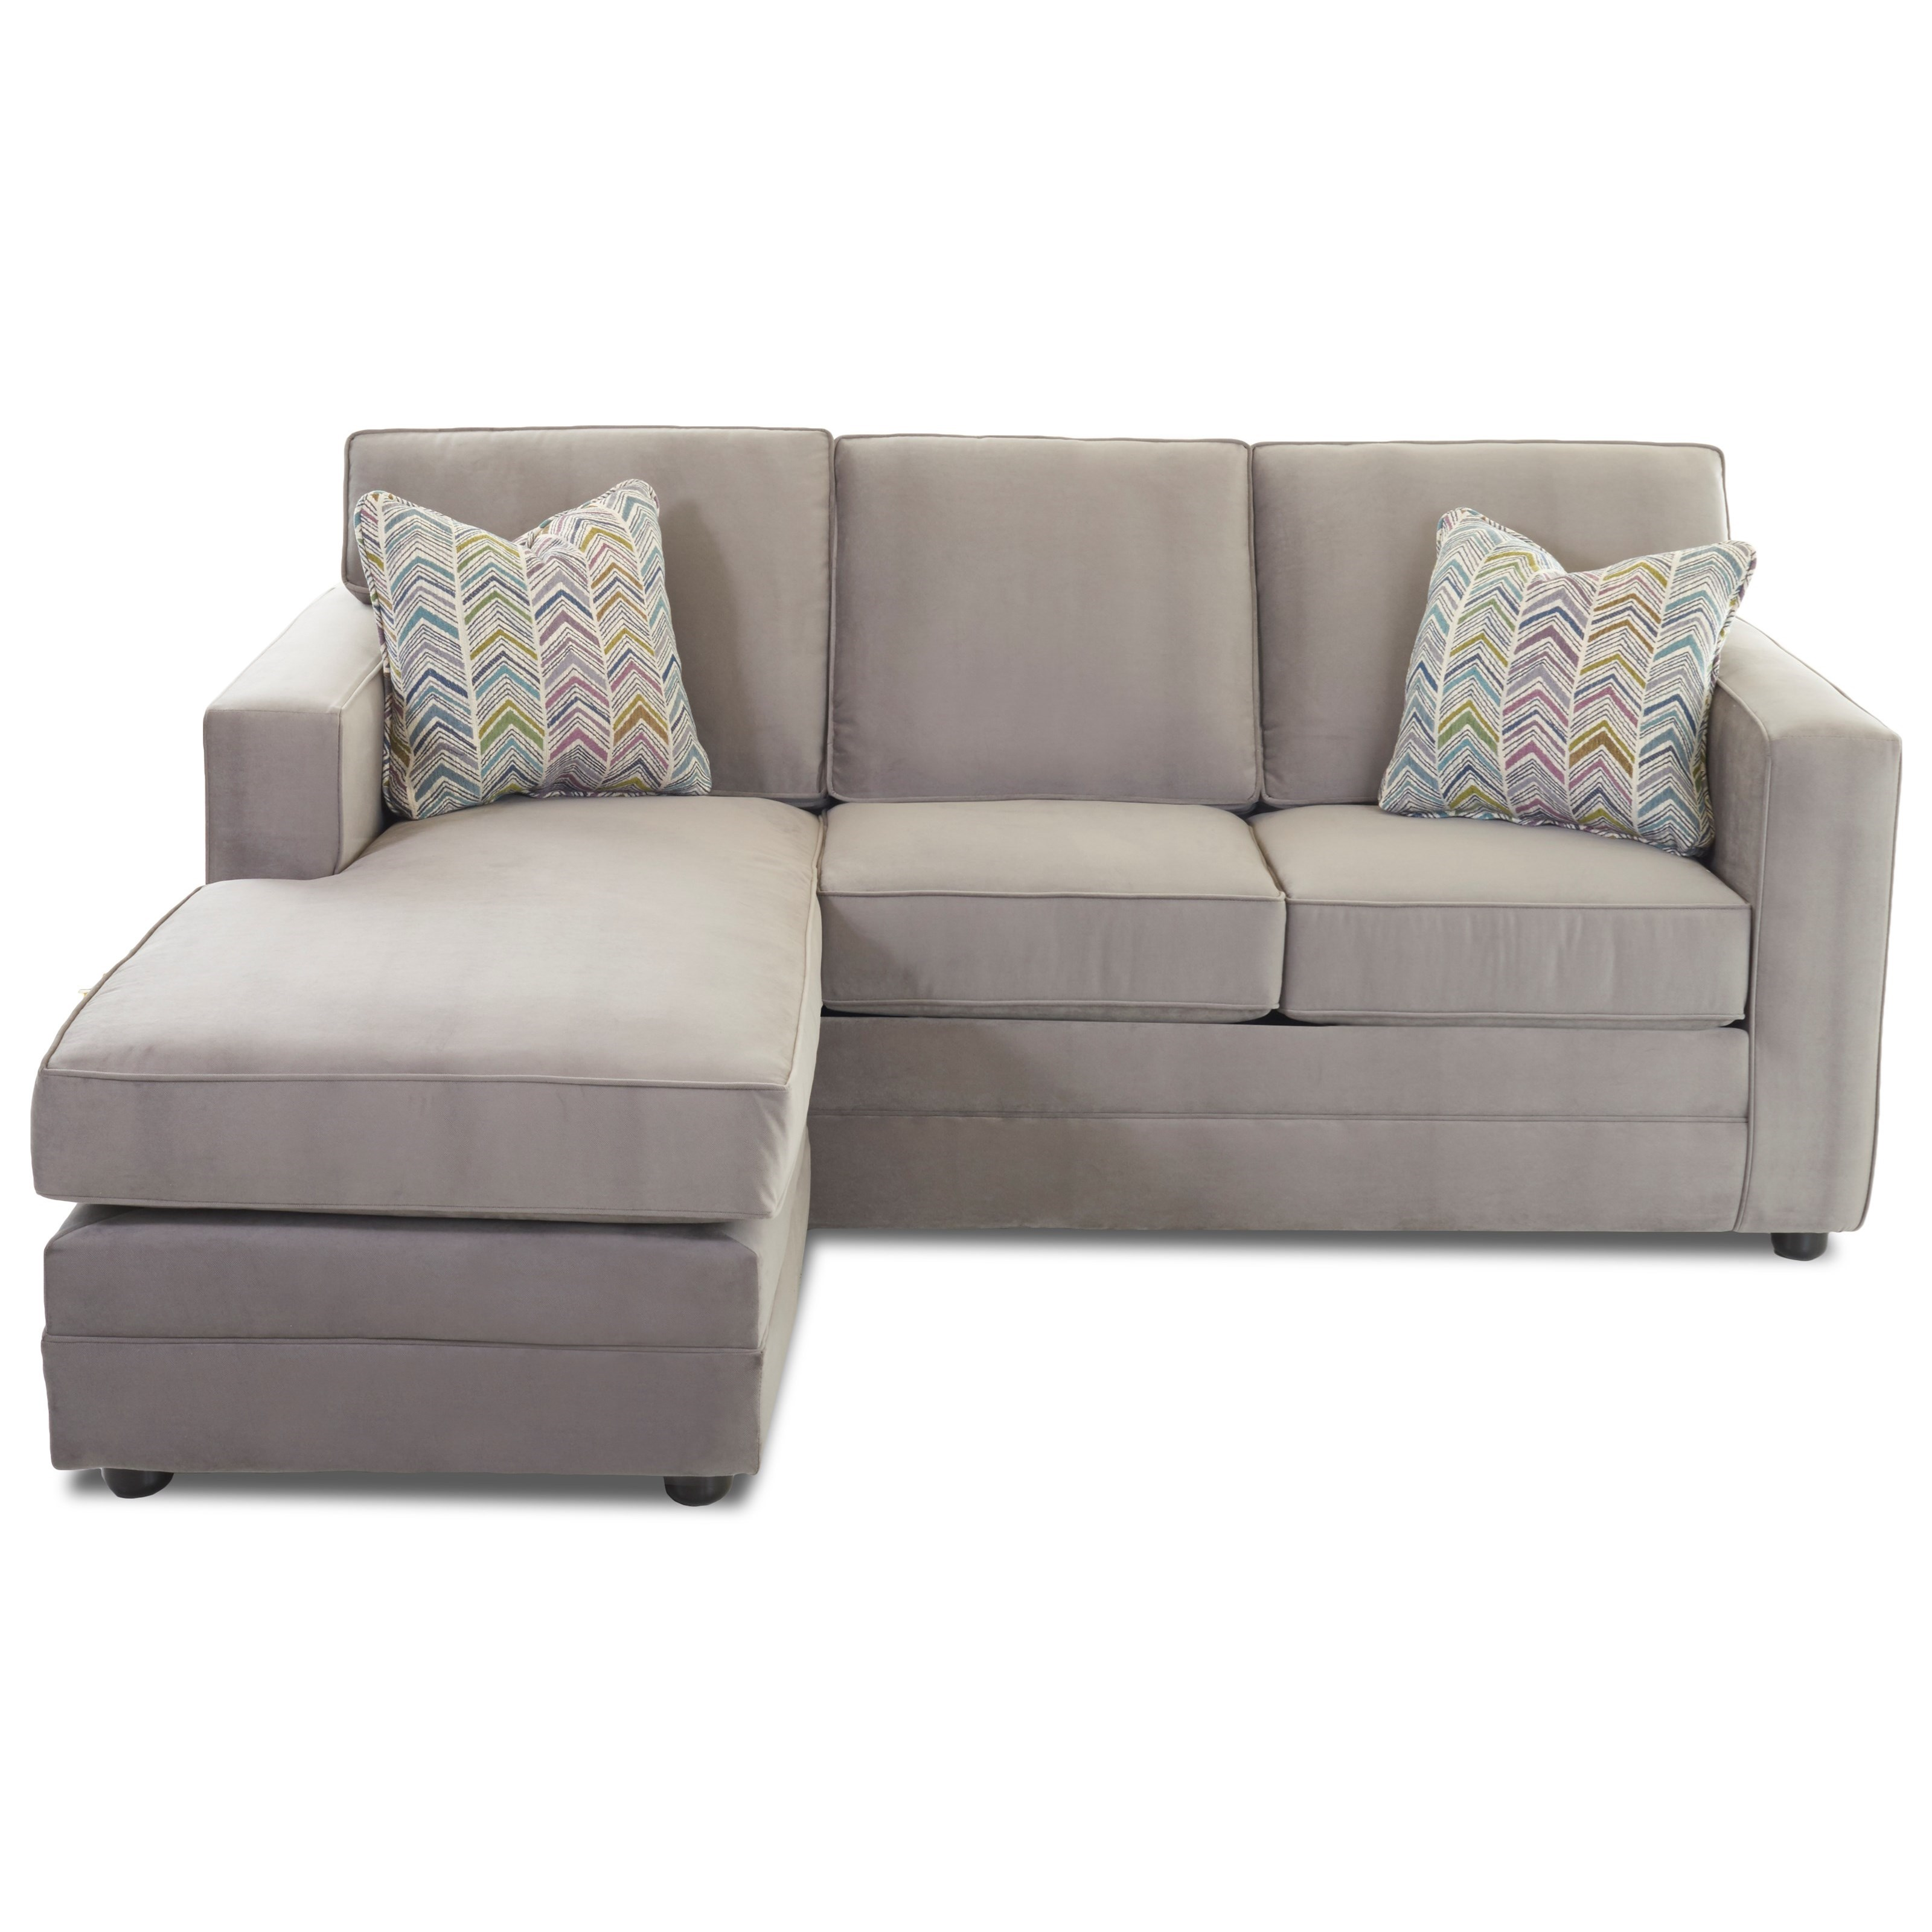 Berger Chaise Sleeper w/ Queen Air Coil Mattress by Klaussner at Godby Home Furnishings